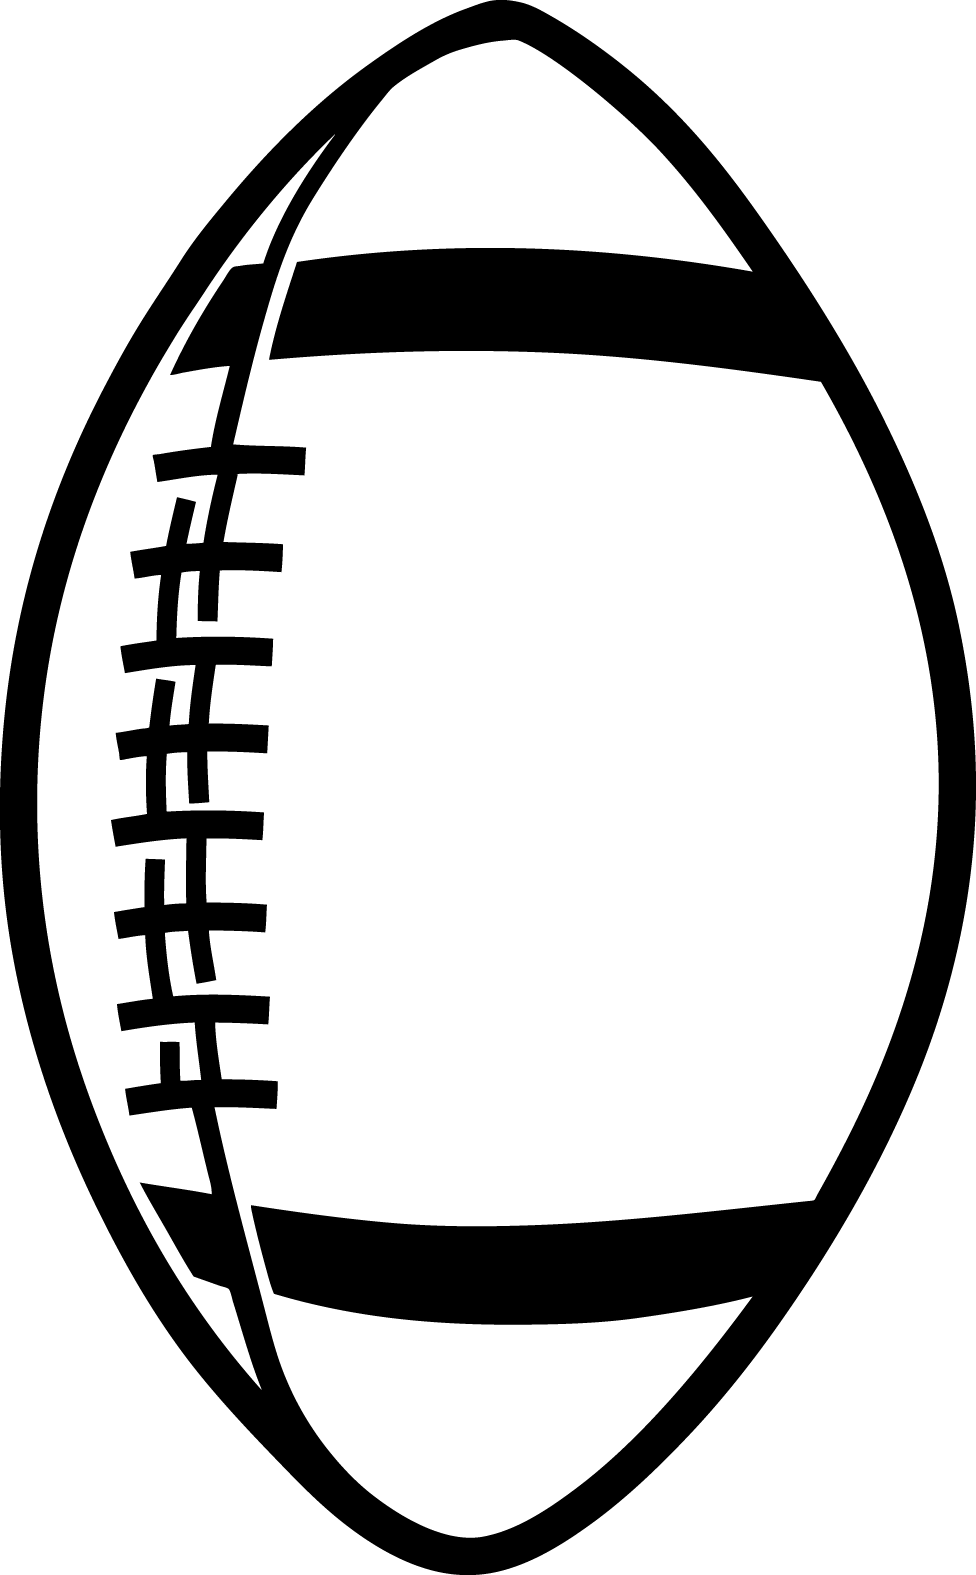 medium resolution of dragonfly outline clipart clipart panda free clipart images